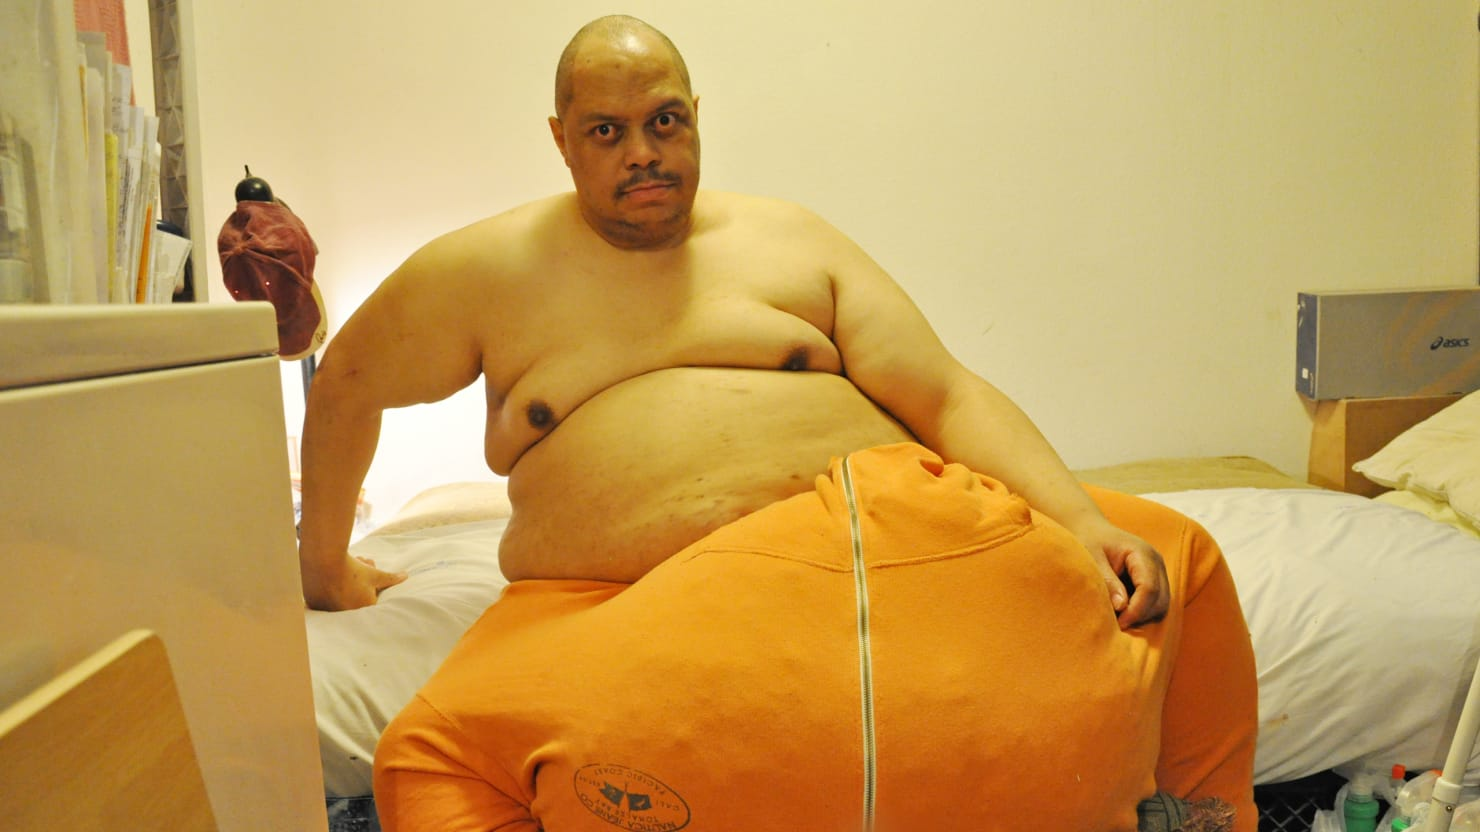 'The Man With the 132 Lb. Scrotum': TLC's Lowest Show Yet?